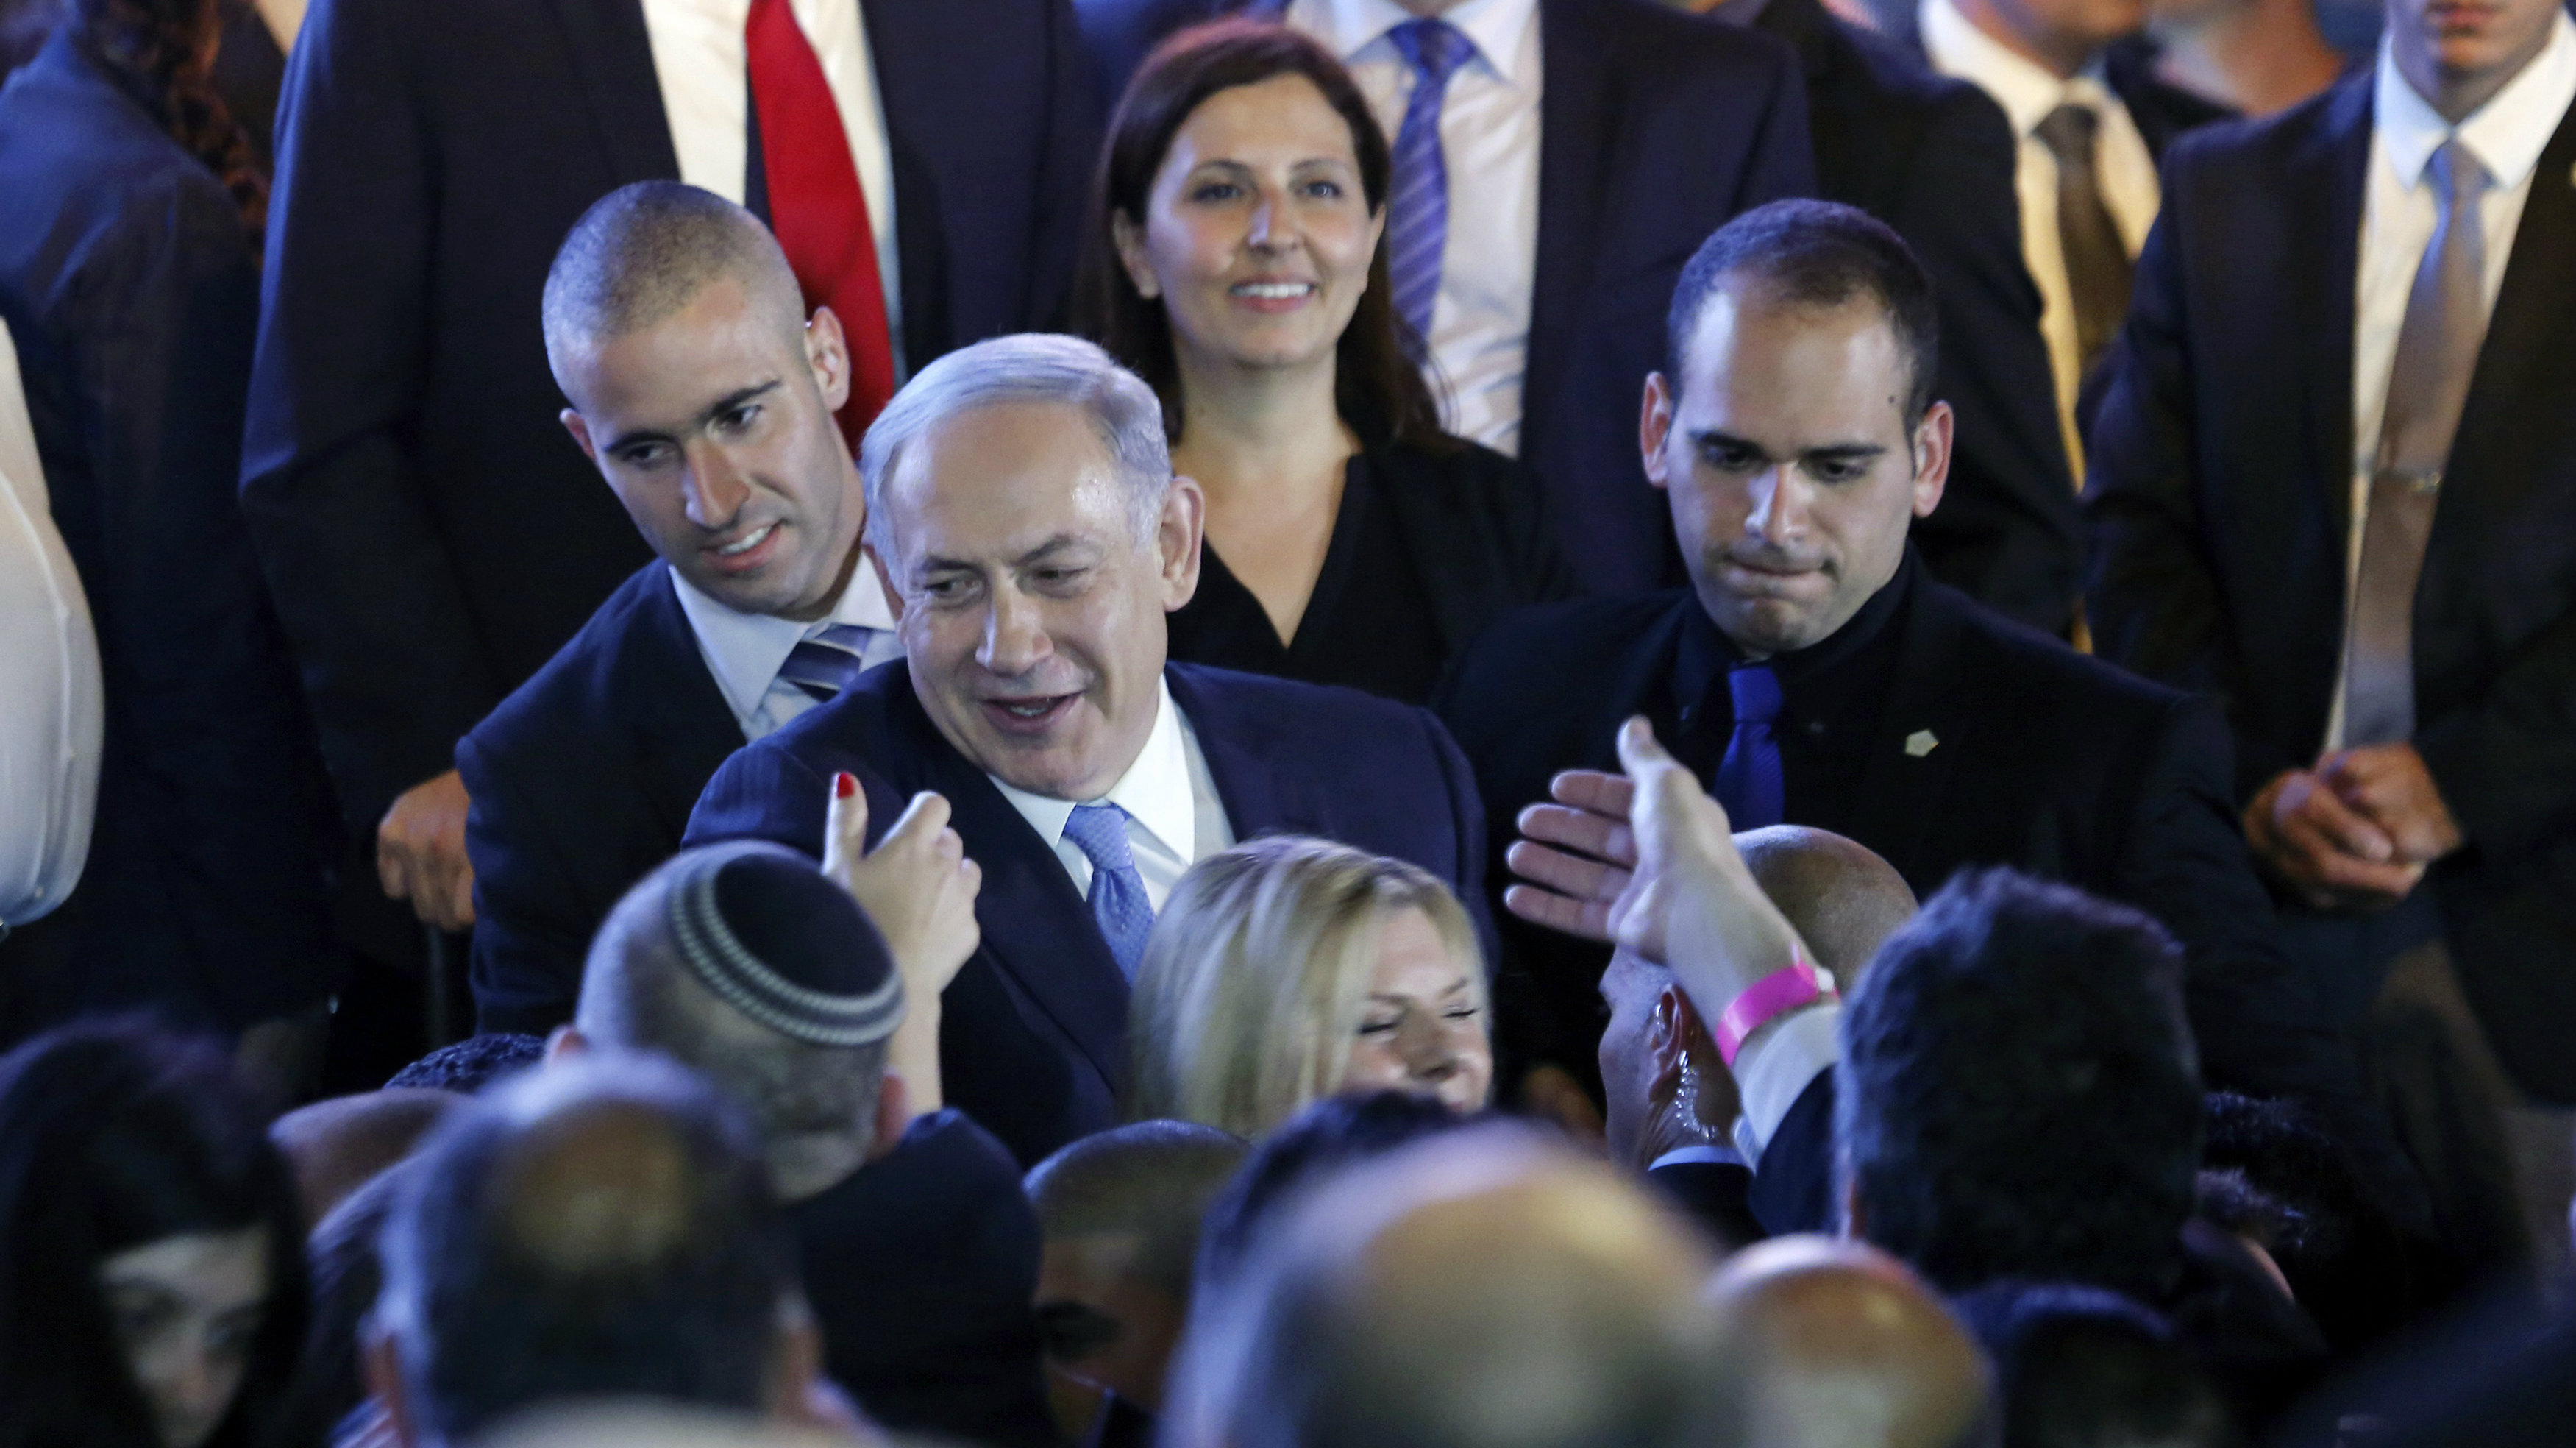 Israeli Prime Minister Benjamin Netanyahu (C) greets supporters at party headquarters in Tel Aviv March 18, 2015.